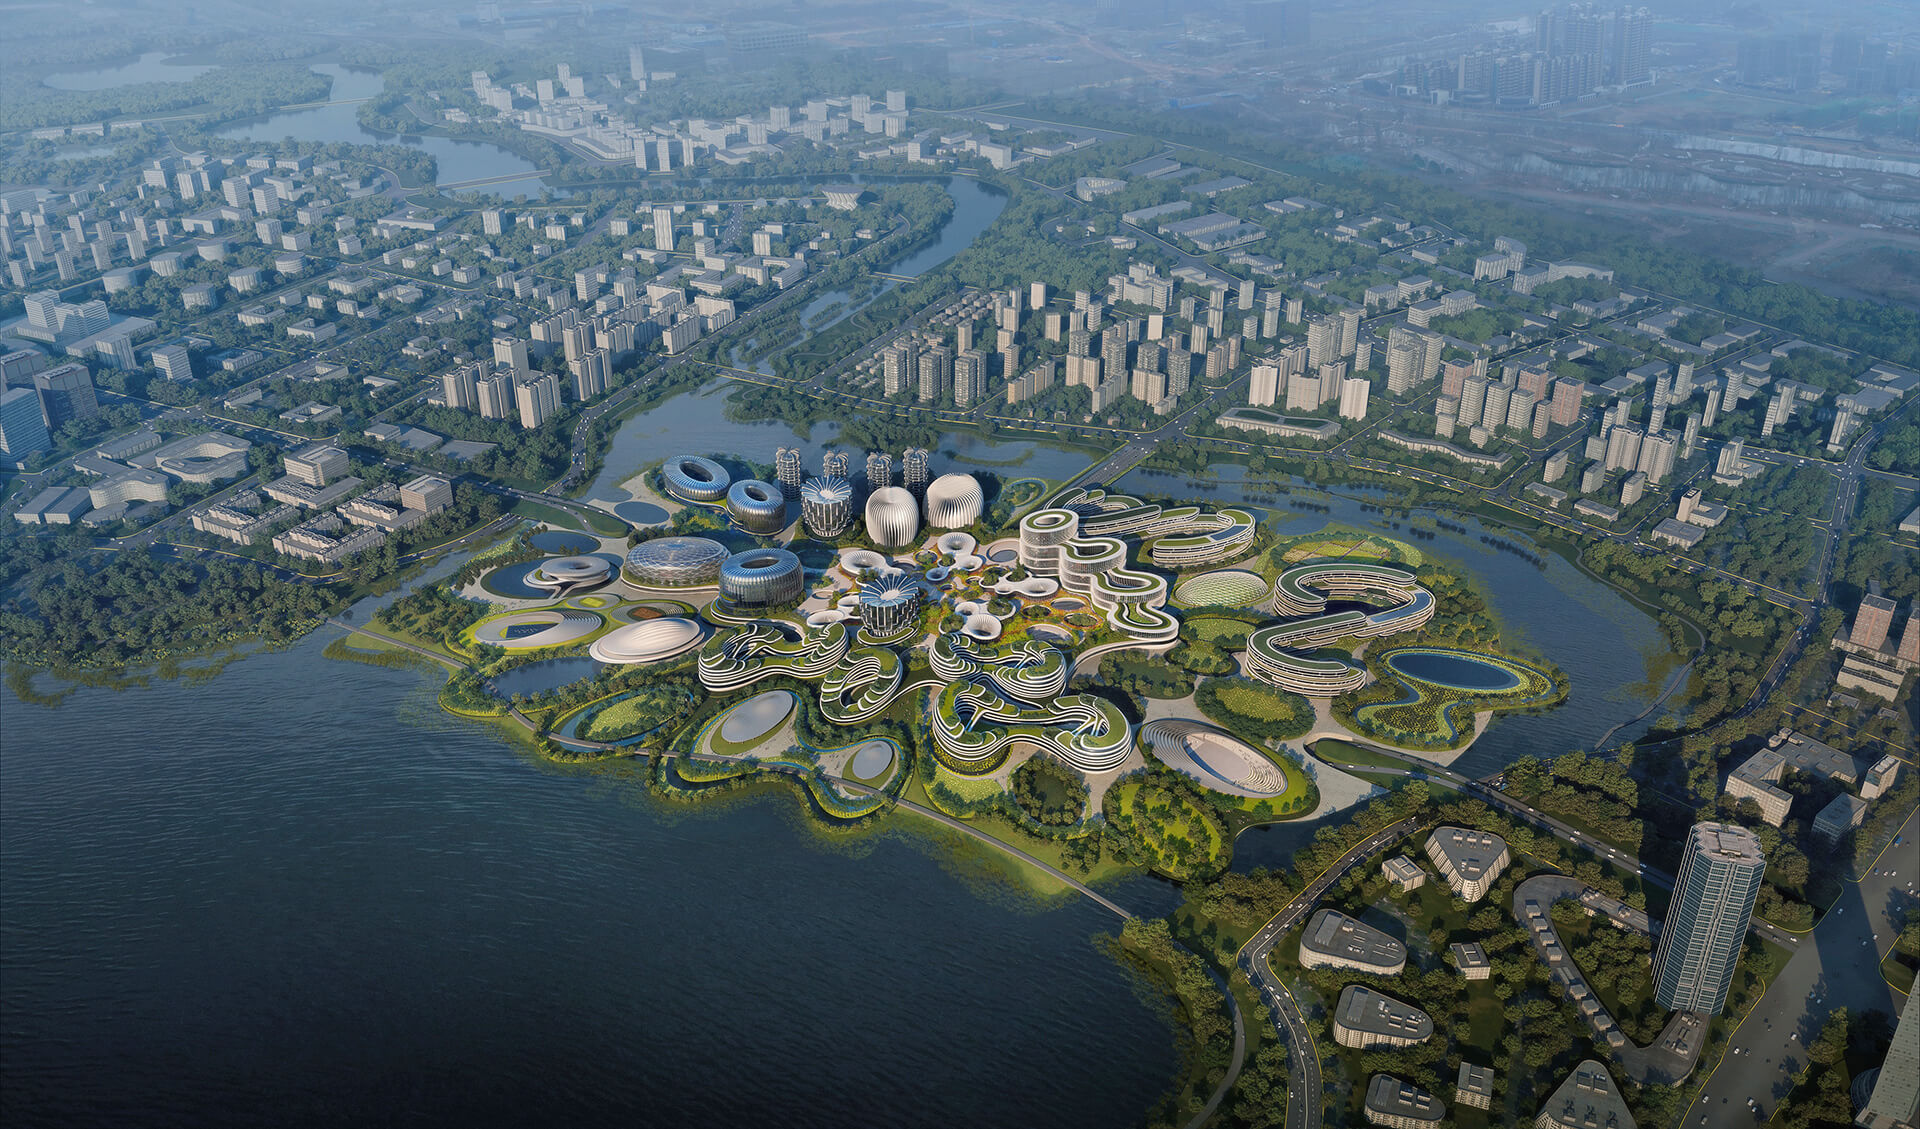 Unicorn Island Masterplan in Chengdu, China conceived by architectural giants Zaha Hadid Architects | Unicorn Island Masterplan| Zaha Hadid Architects | STIRworld